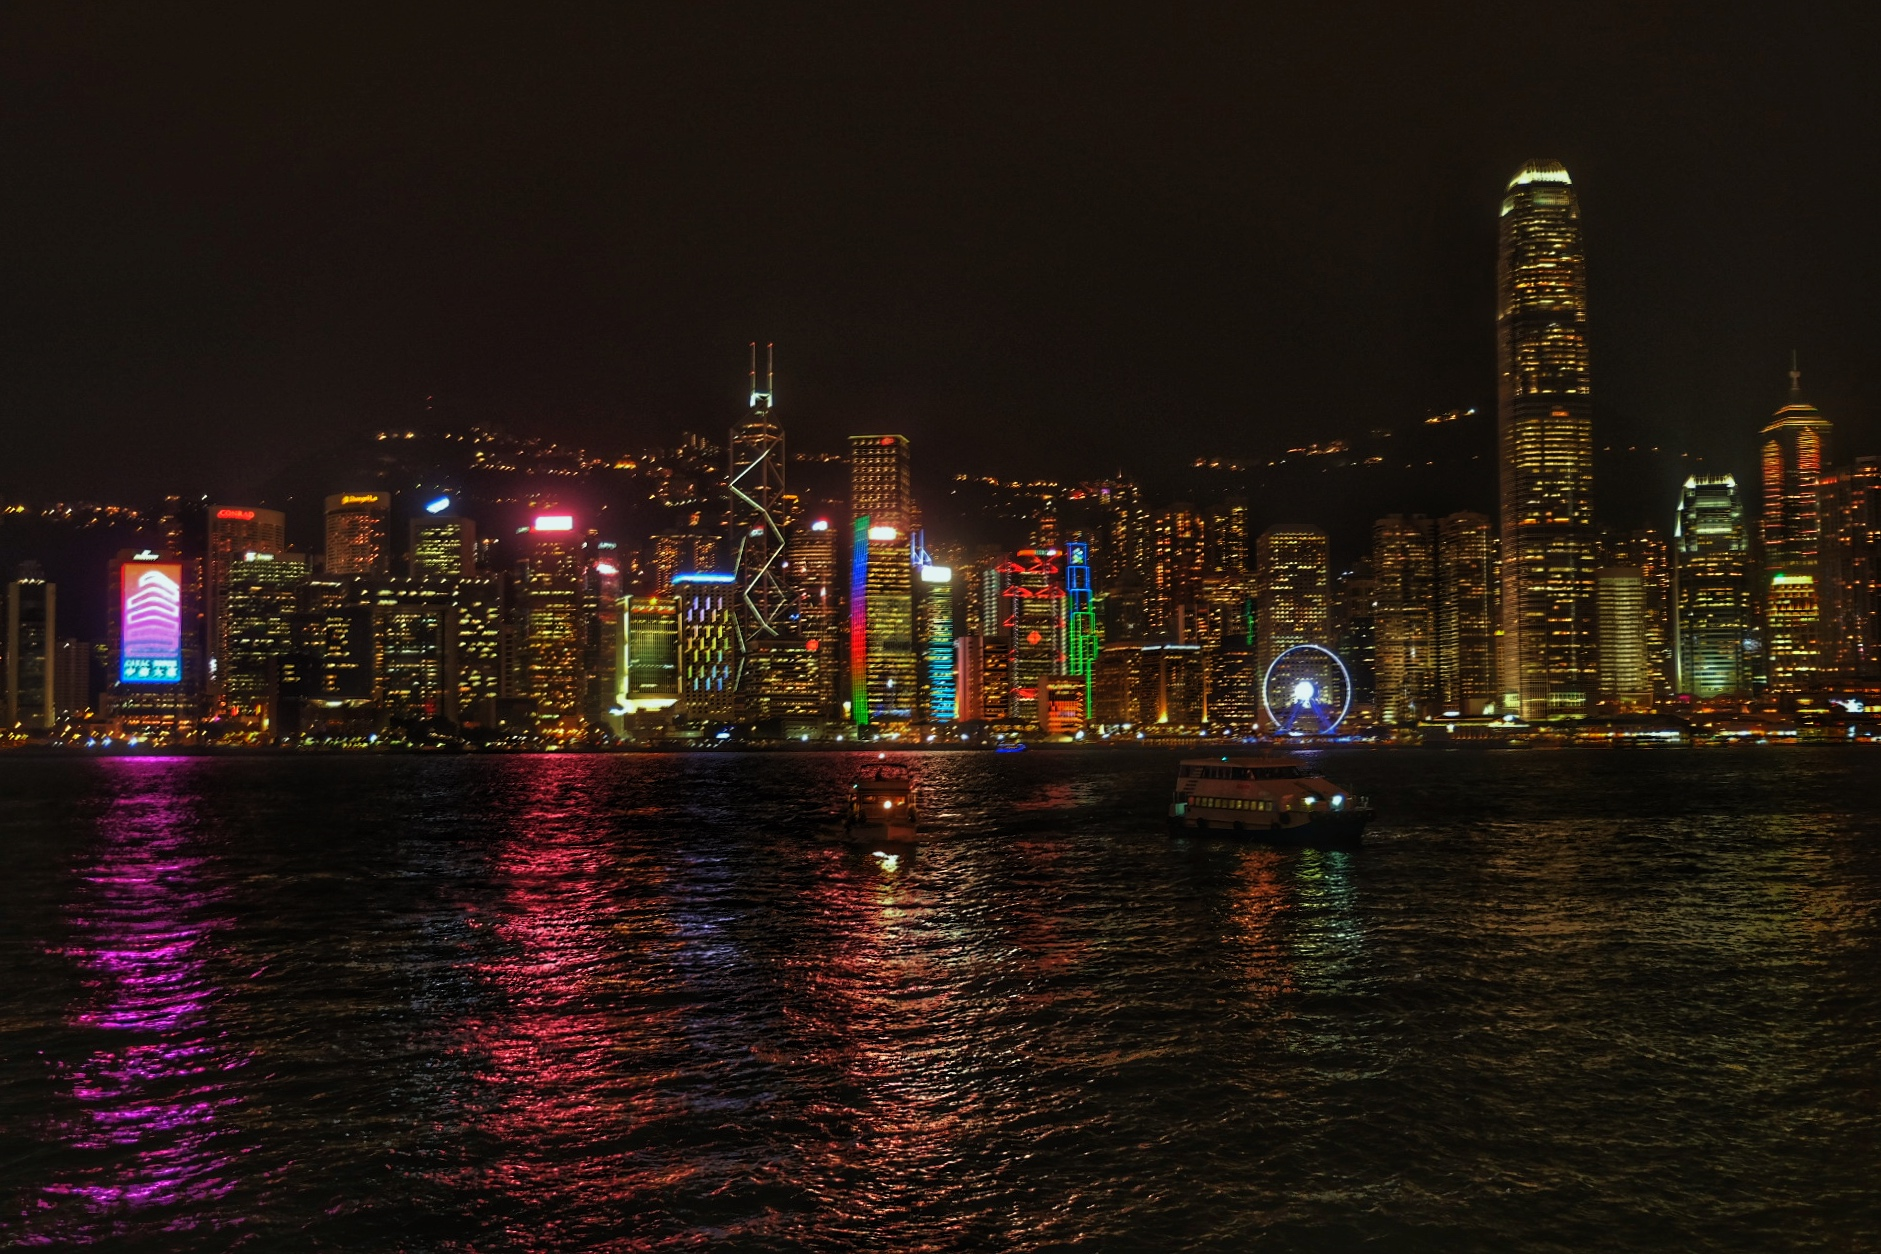 Hong Kong's skyline.